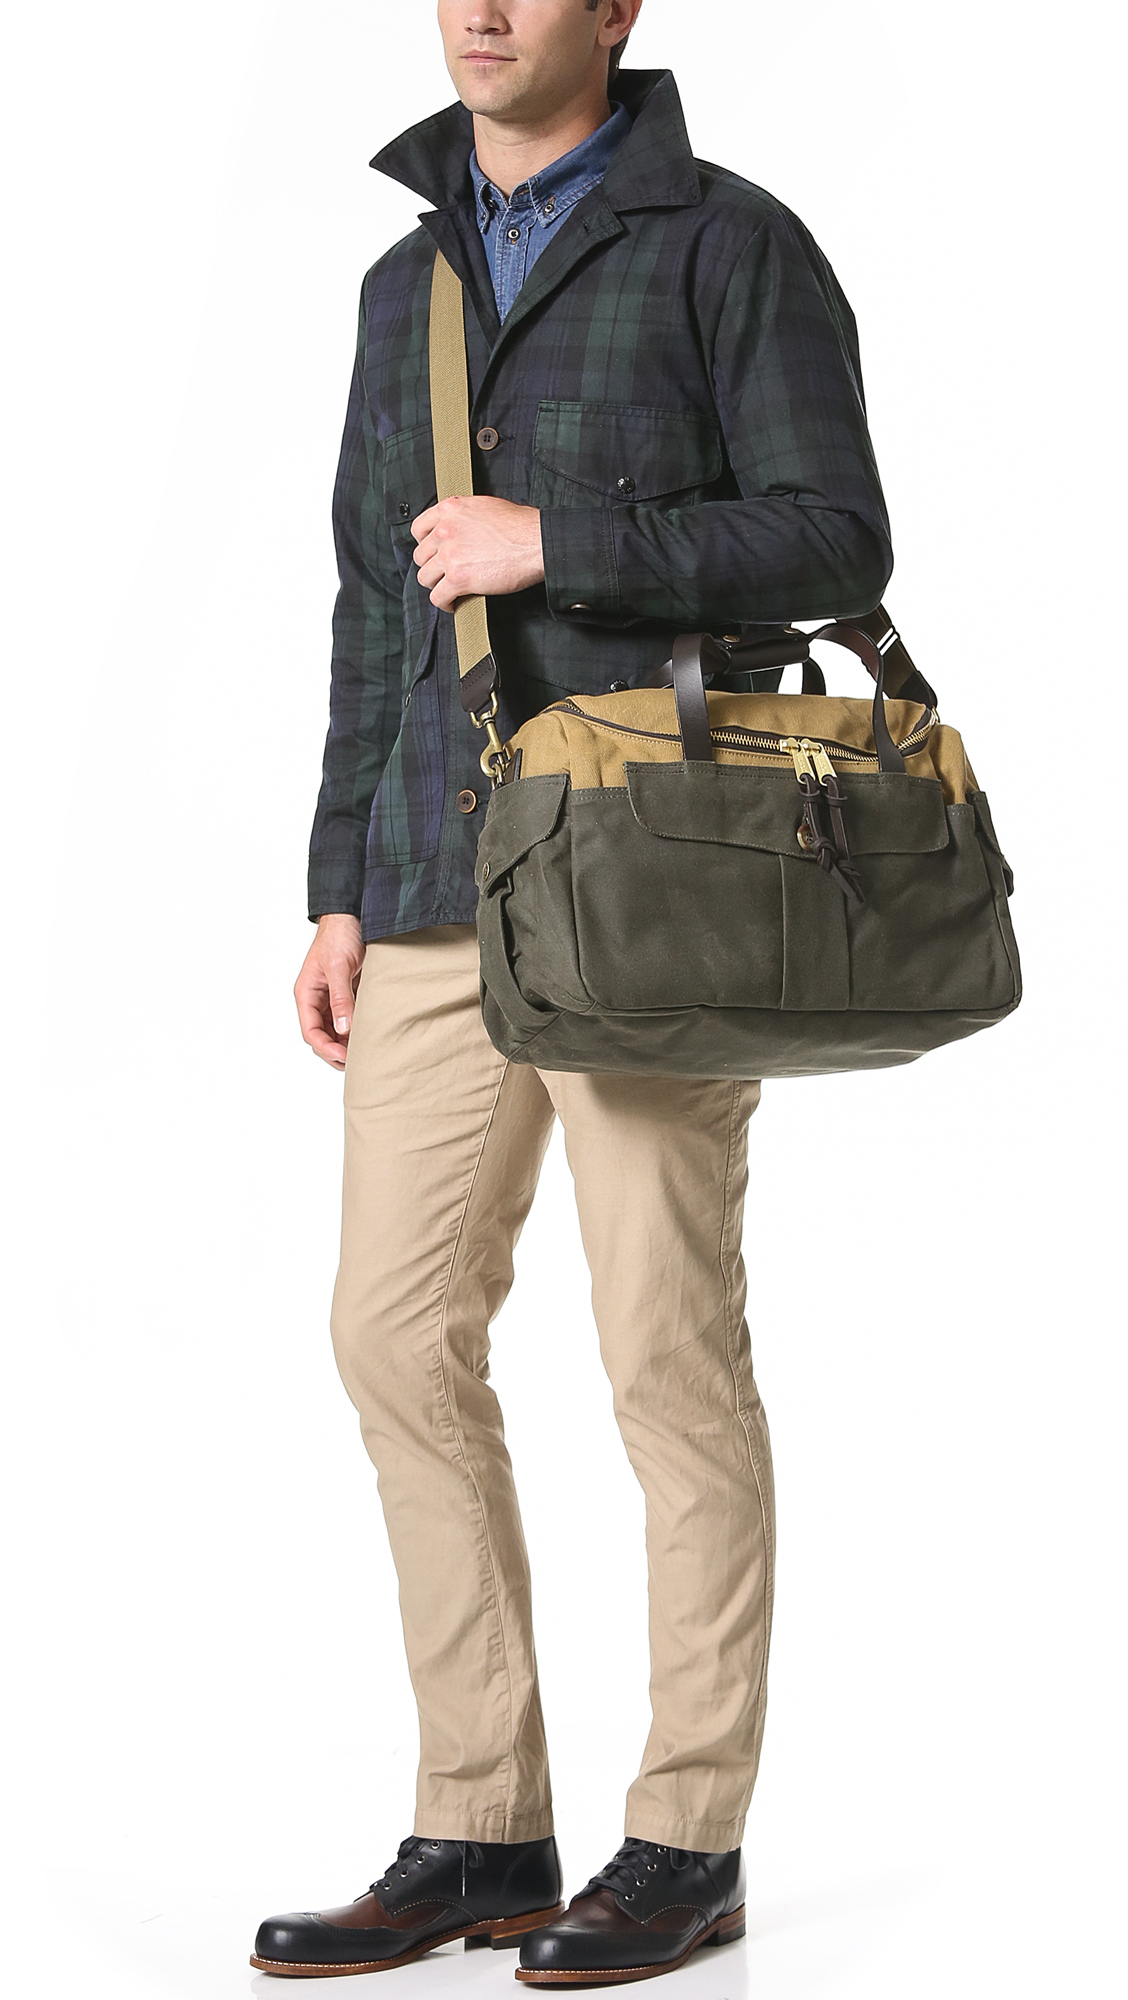 FILSON MCCURRY  Filson Original Sportsman Bag EAST DANE online retailer  9955d abb91 ... 2859ec8f56